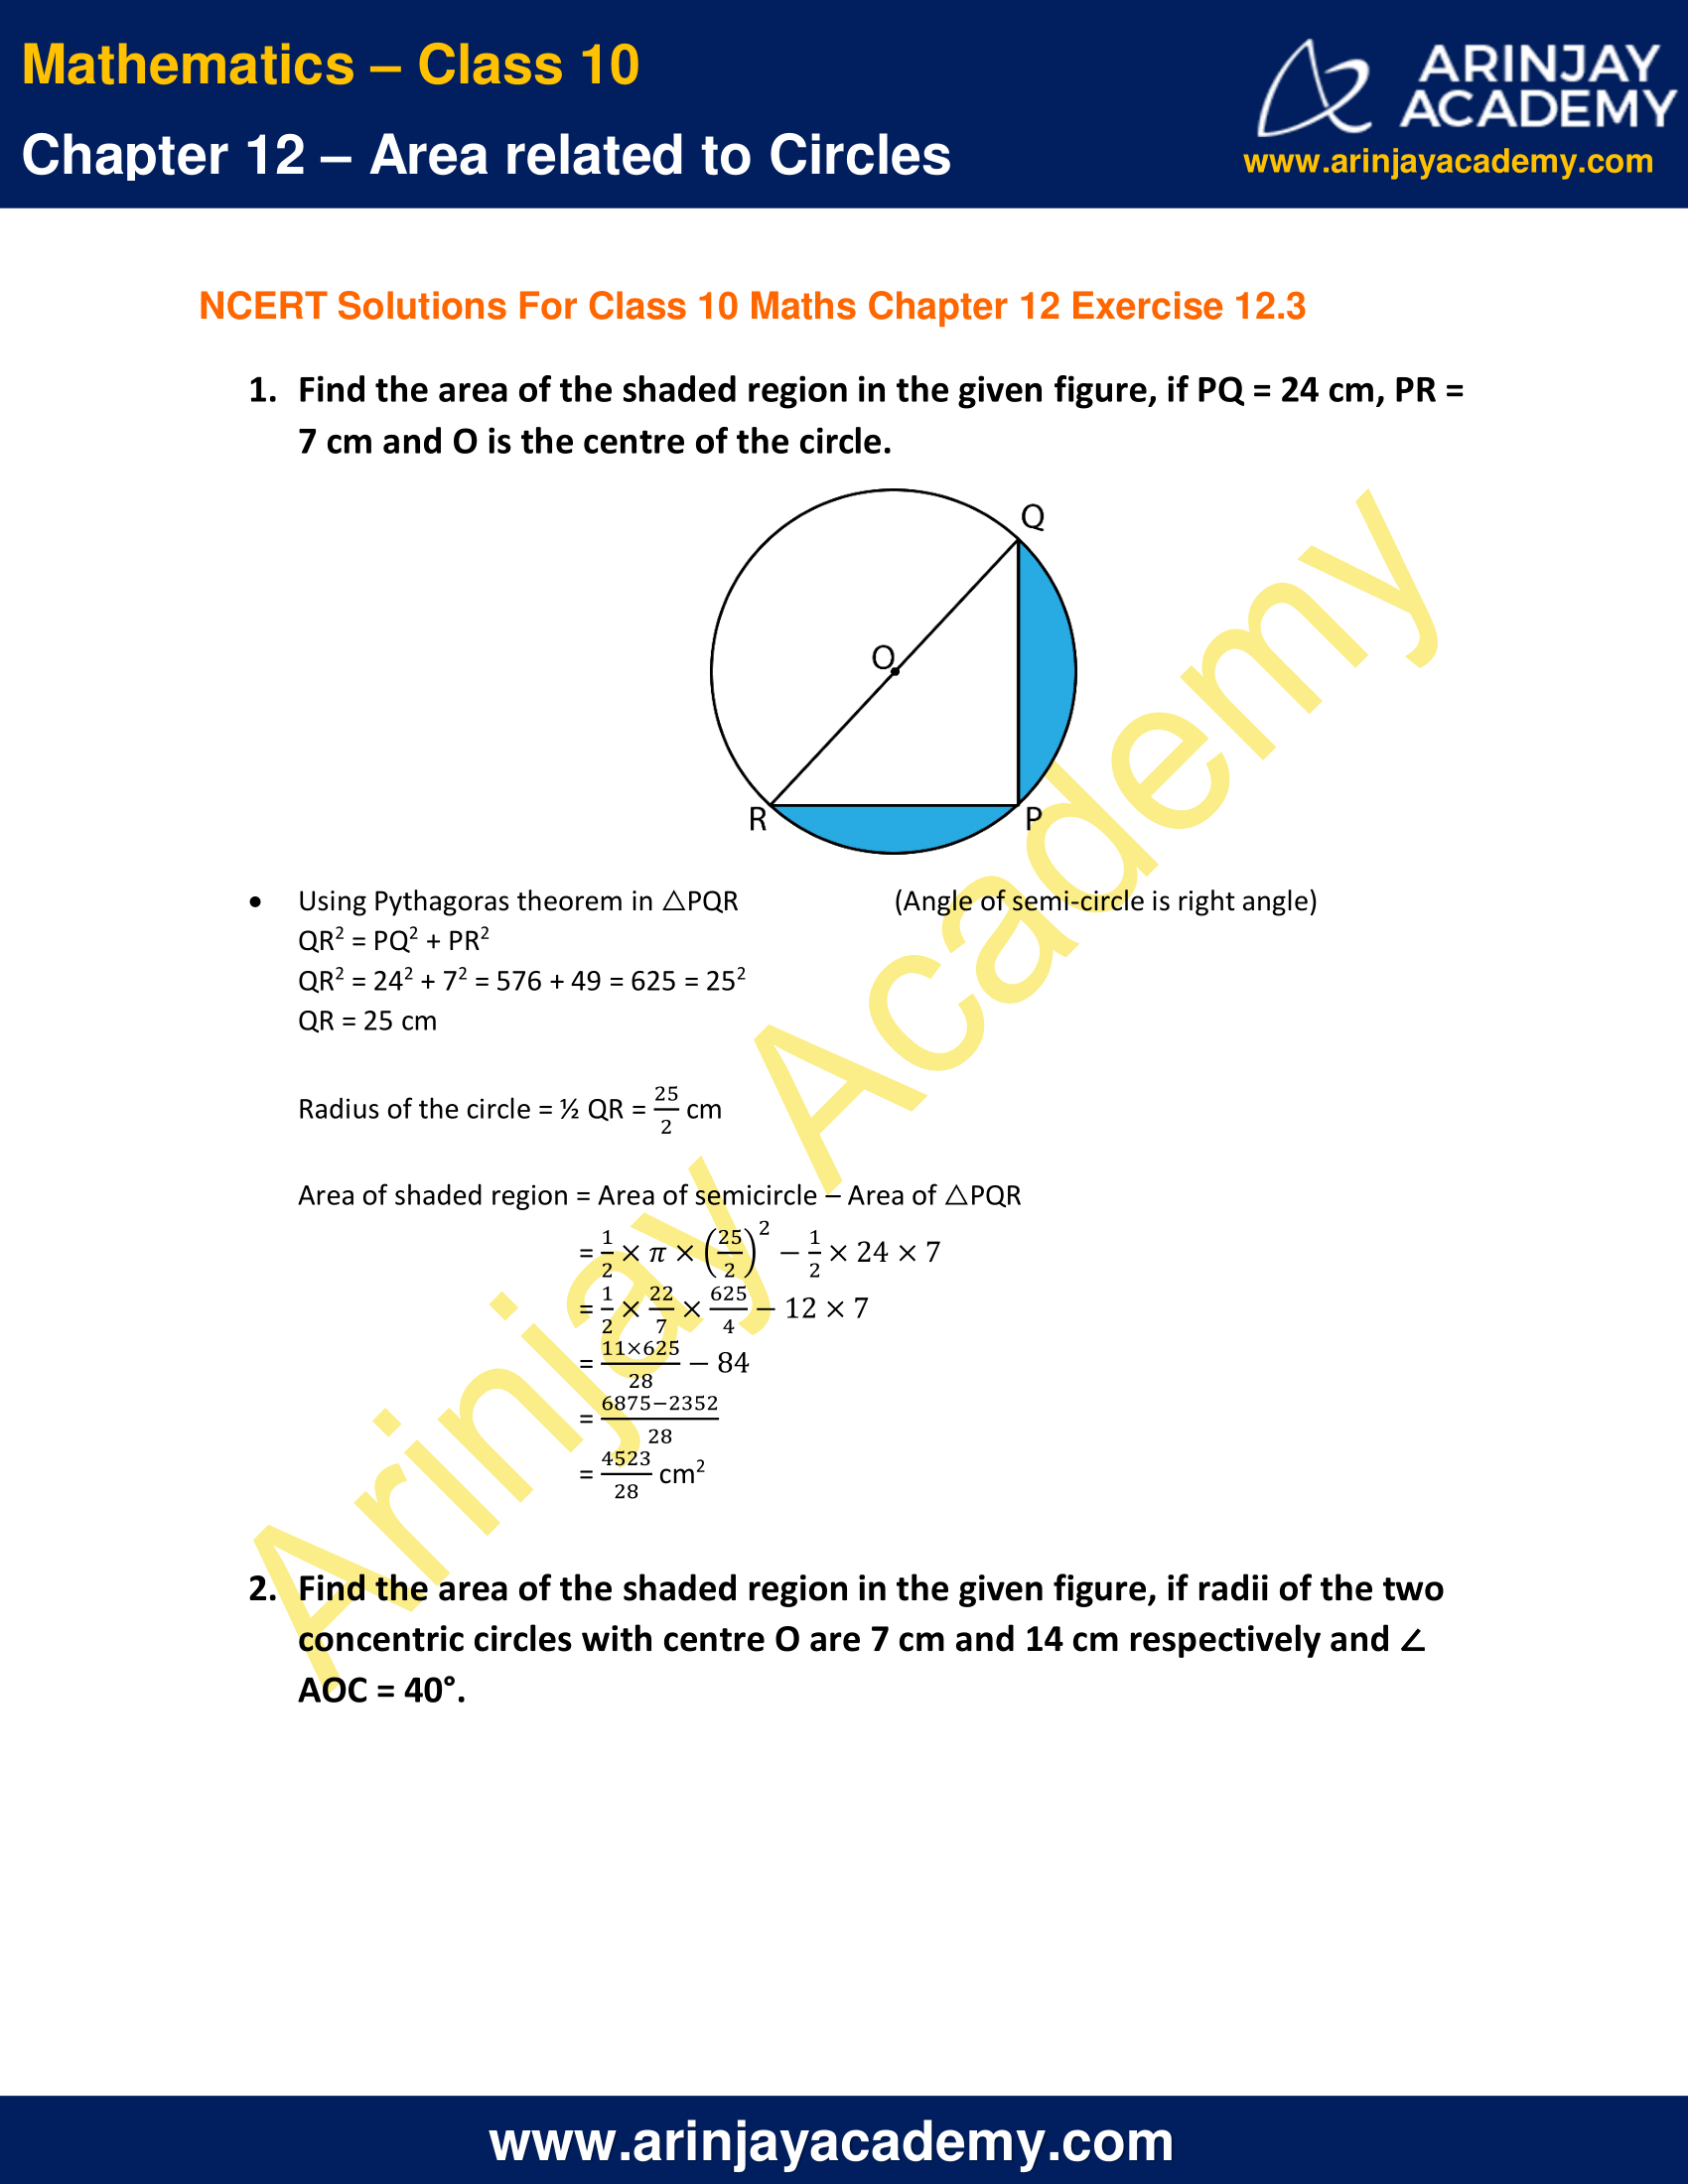 NCERT Solutions For Class 10 Maths Chapter 12 Exercise 12.3 image 1